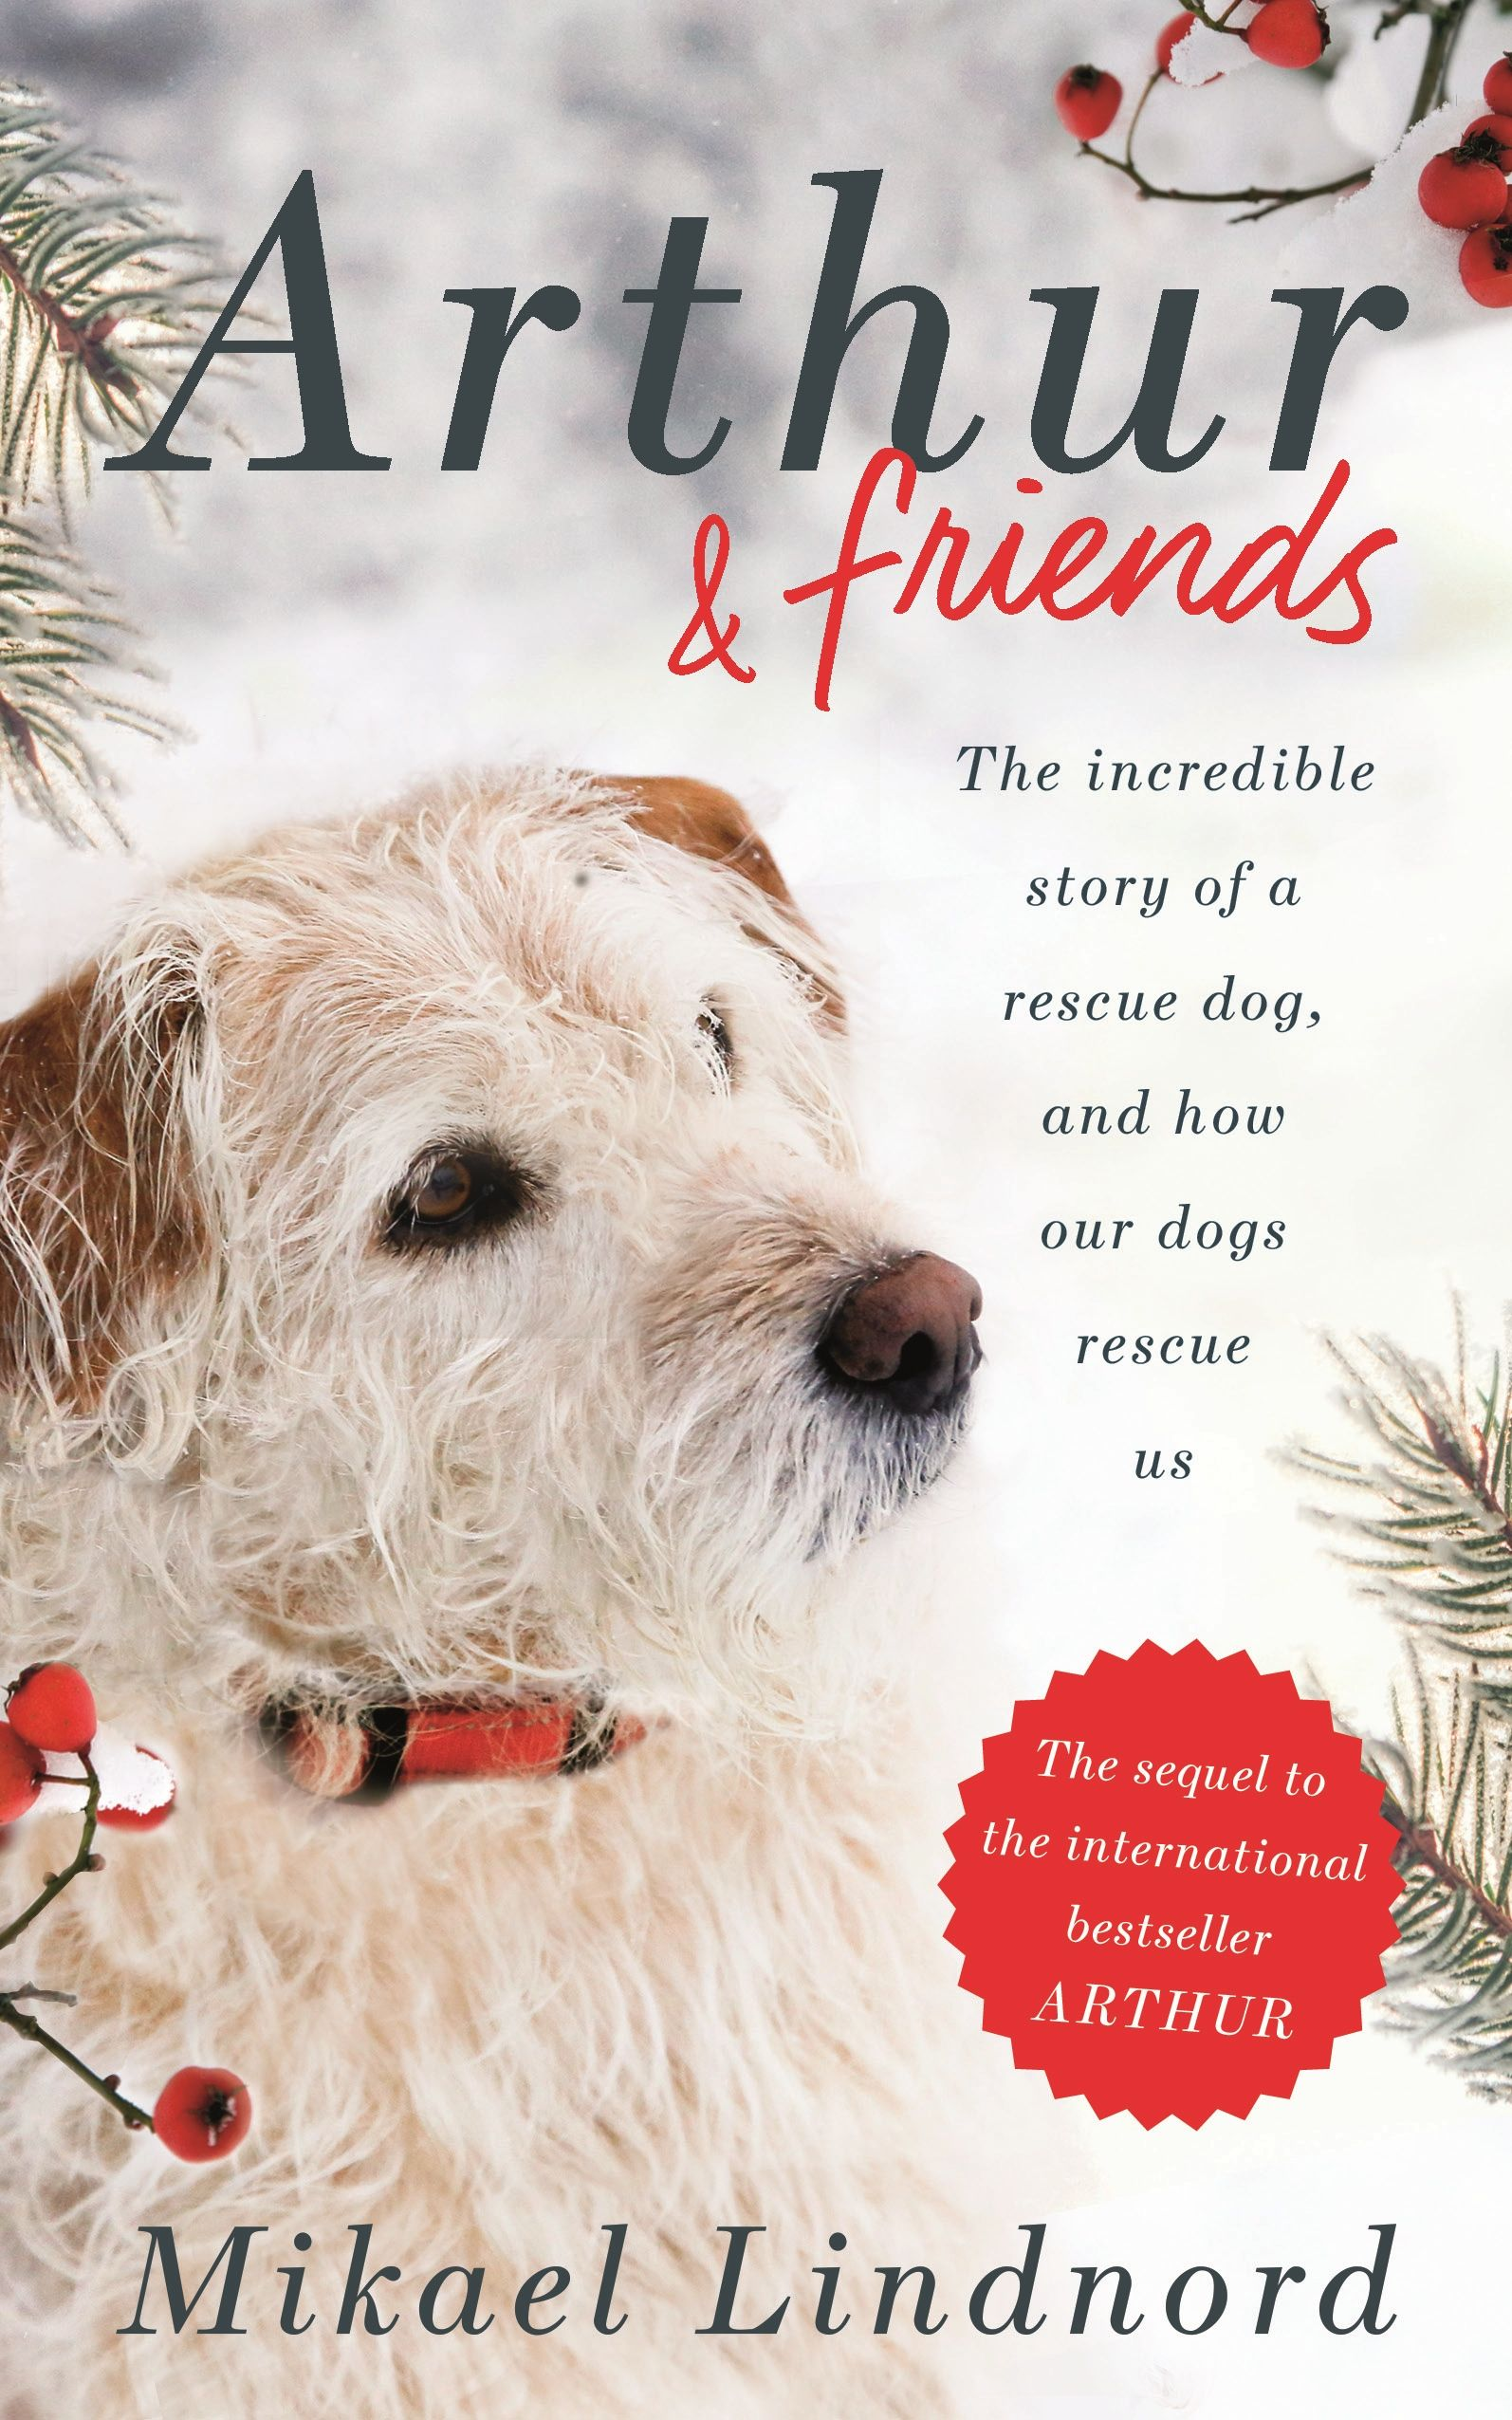 Book Club Rescue dogs, Dogs, The incredibles